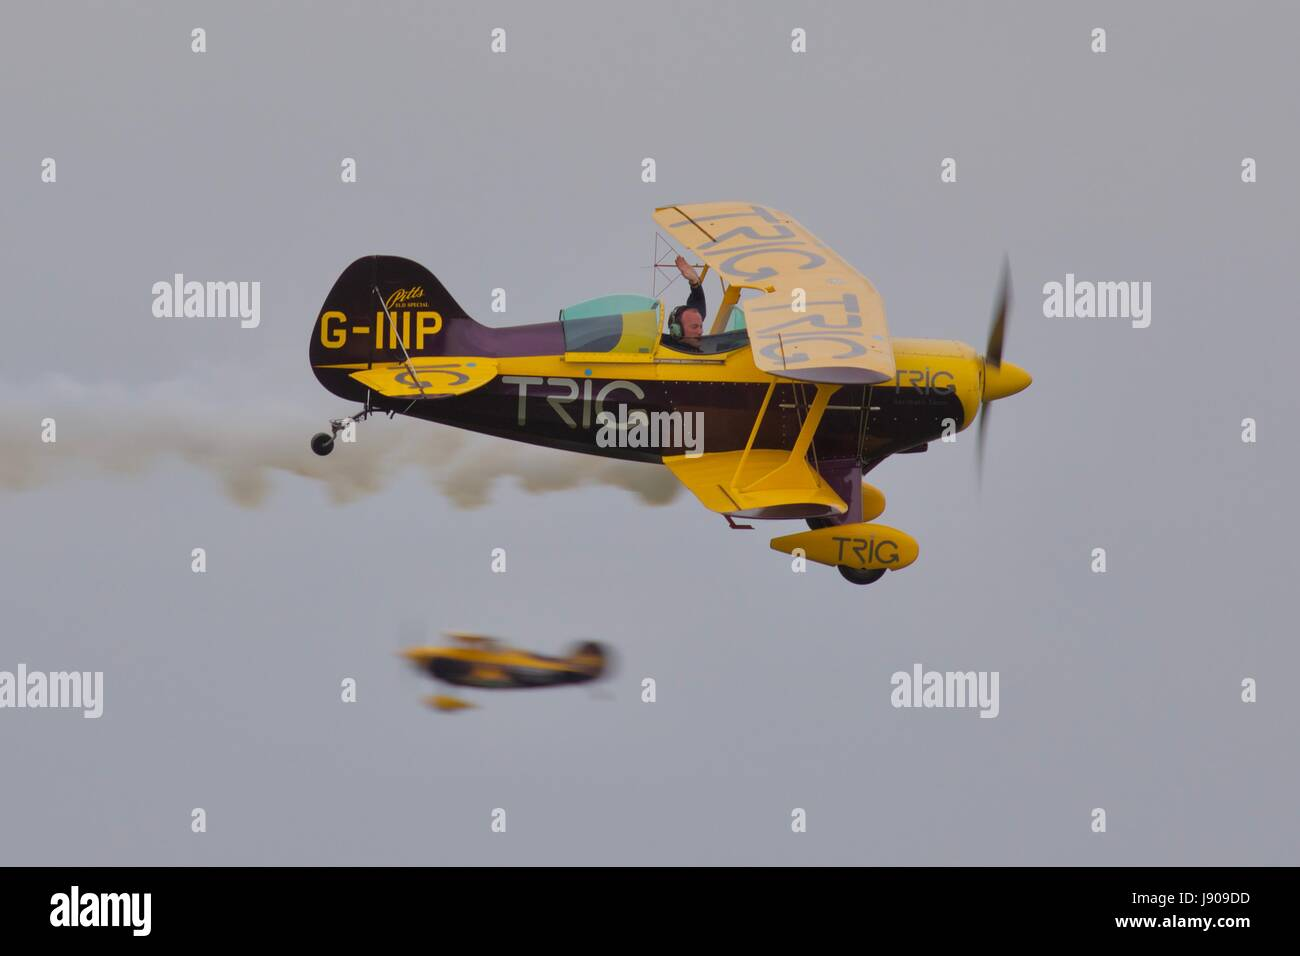 Trig Aerobatic Team - Pitts S-1D Special - Stock Image